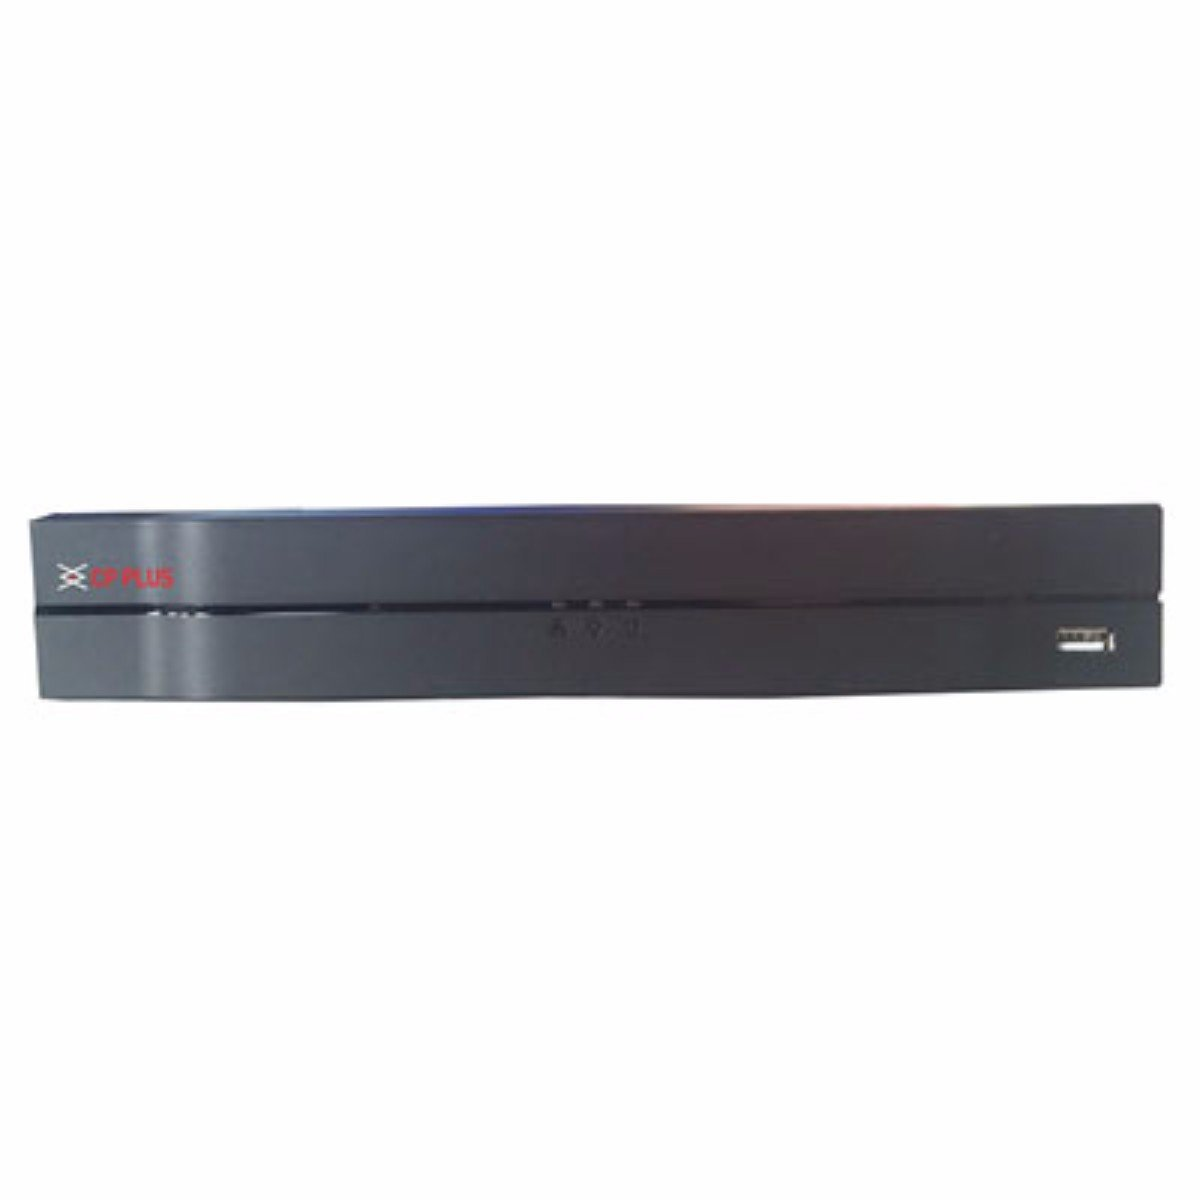 CP Plus CP-UVR-1601E1-S (without Harddisk) 16 Channel DVR (Black)